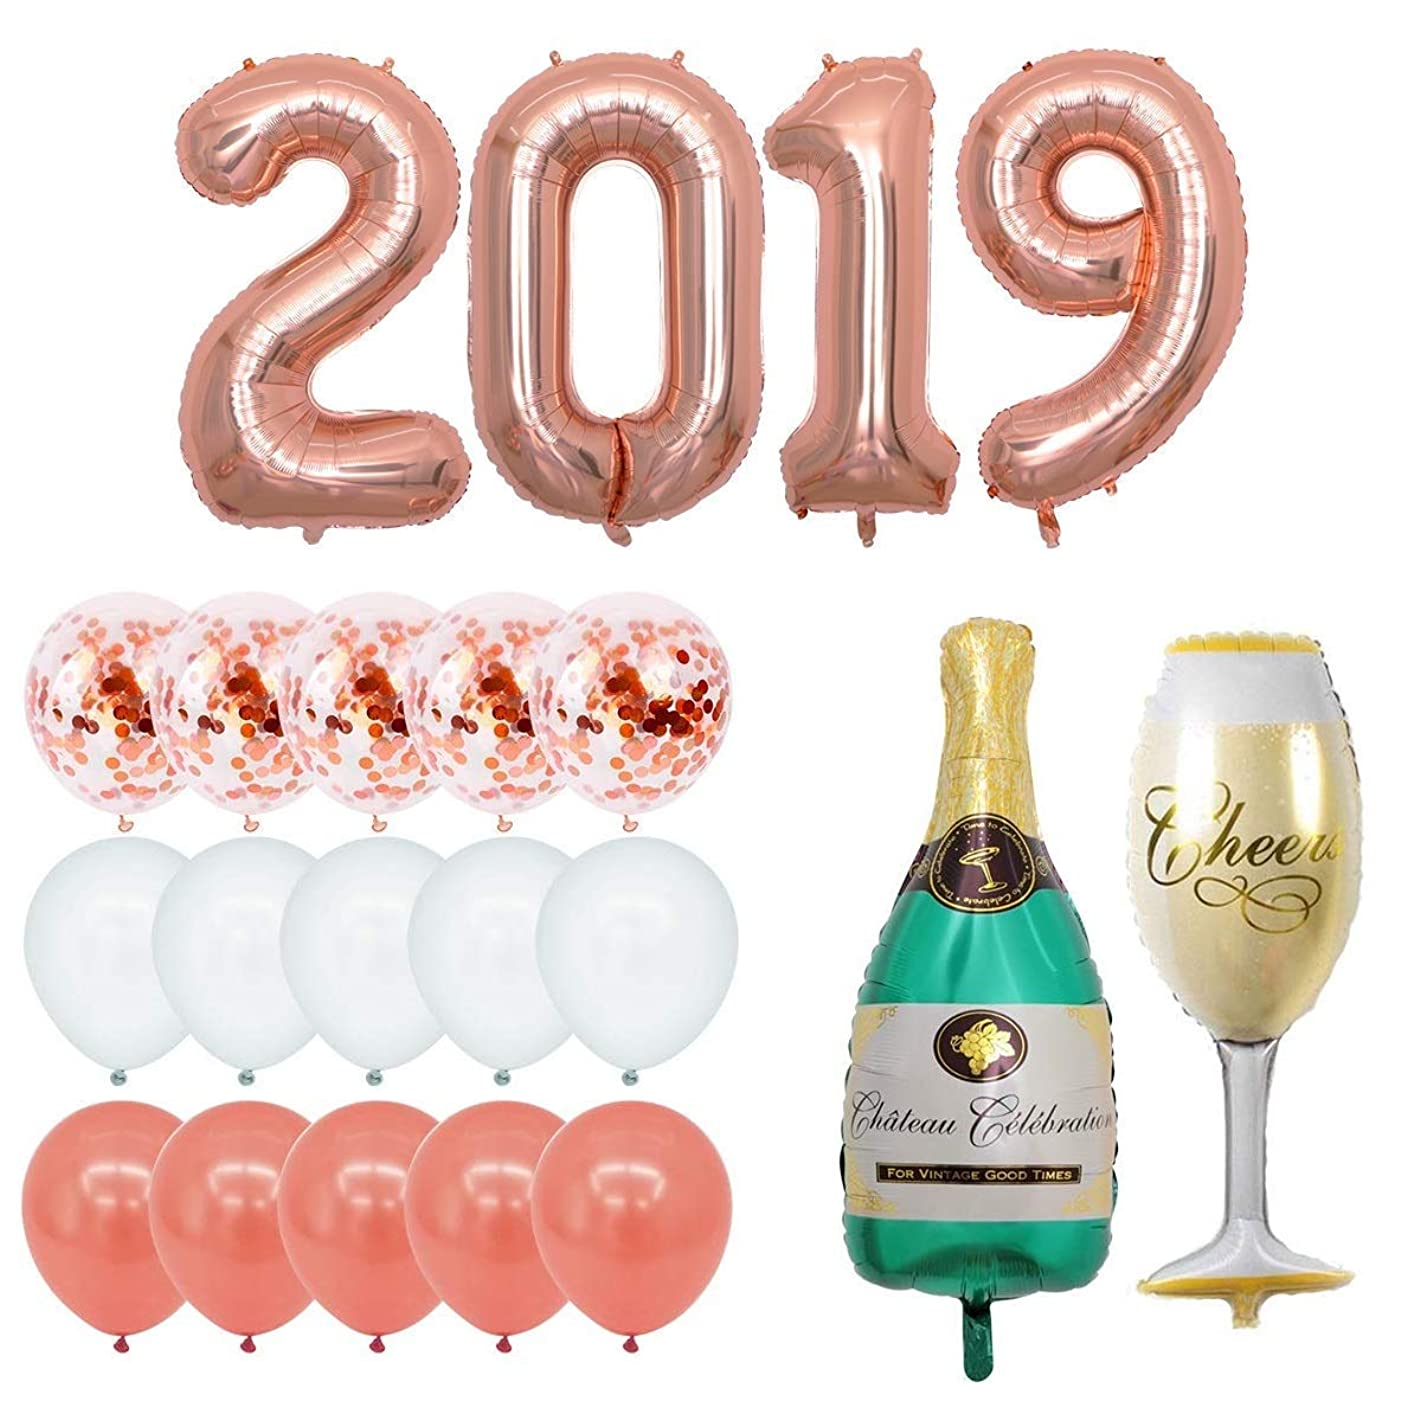 40 inch 2019 Rose Gold Foil Balloon Champagne Bottle Goblet Pre-Filled 12inch Confetti Balloons for 2019 New Year PartyDecoration Graduation Celebrations